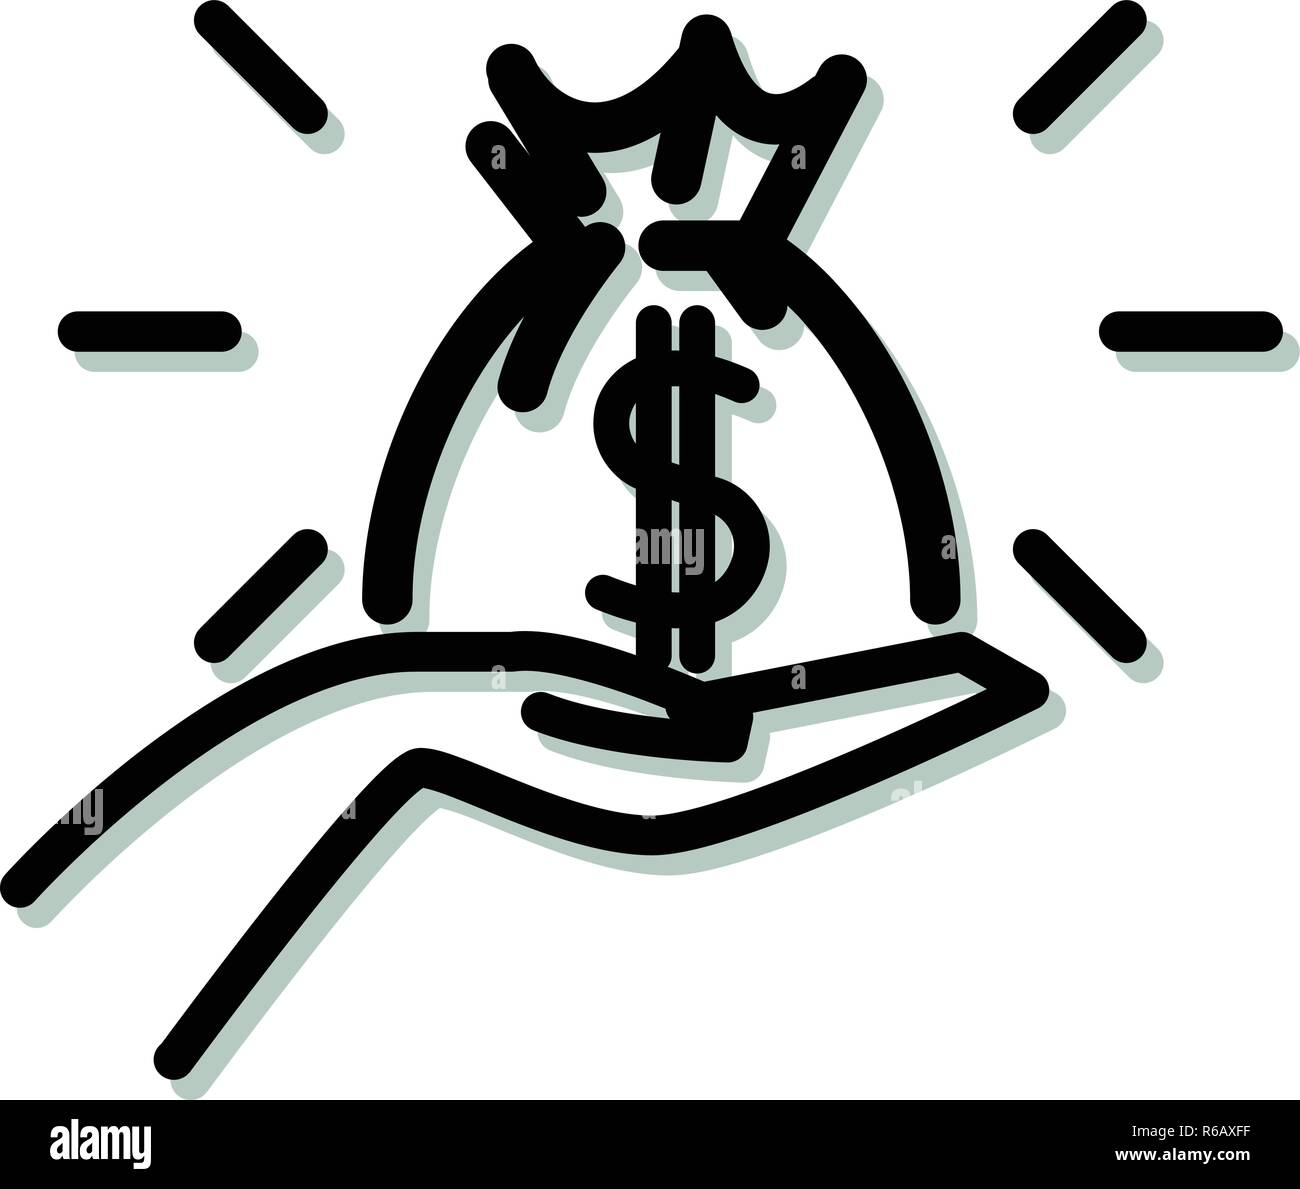 Venture Capitalist Funding Icon as EPS 10 File - Stock Image